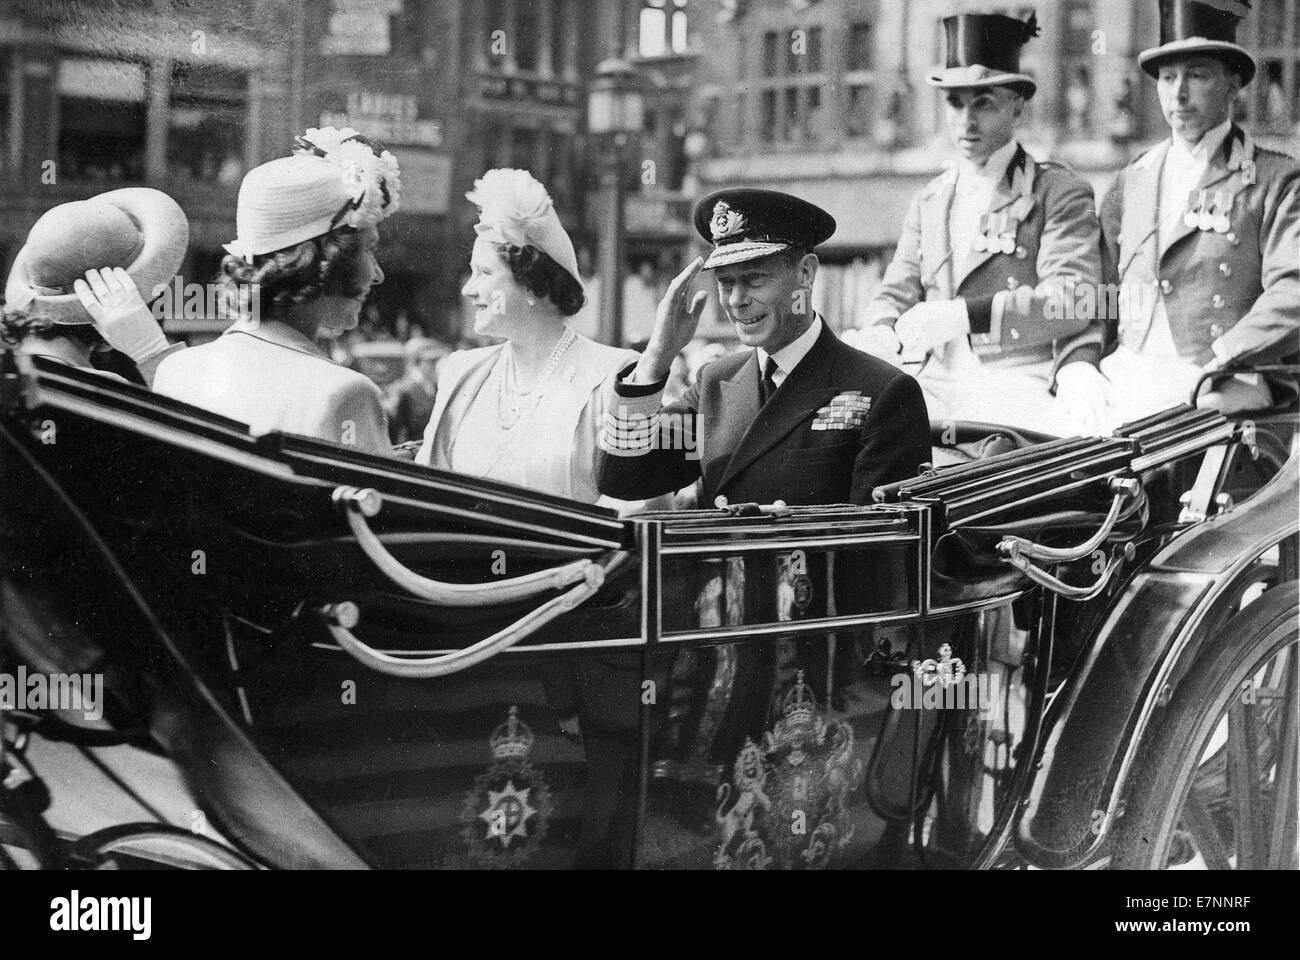 King George, Queen Elizabeth, Princess Margaret and Princess Elizabeth in the state landau at the end of WW11 - Stock Image